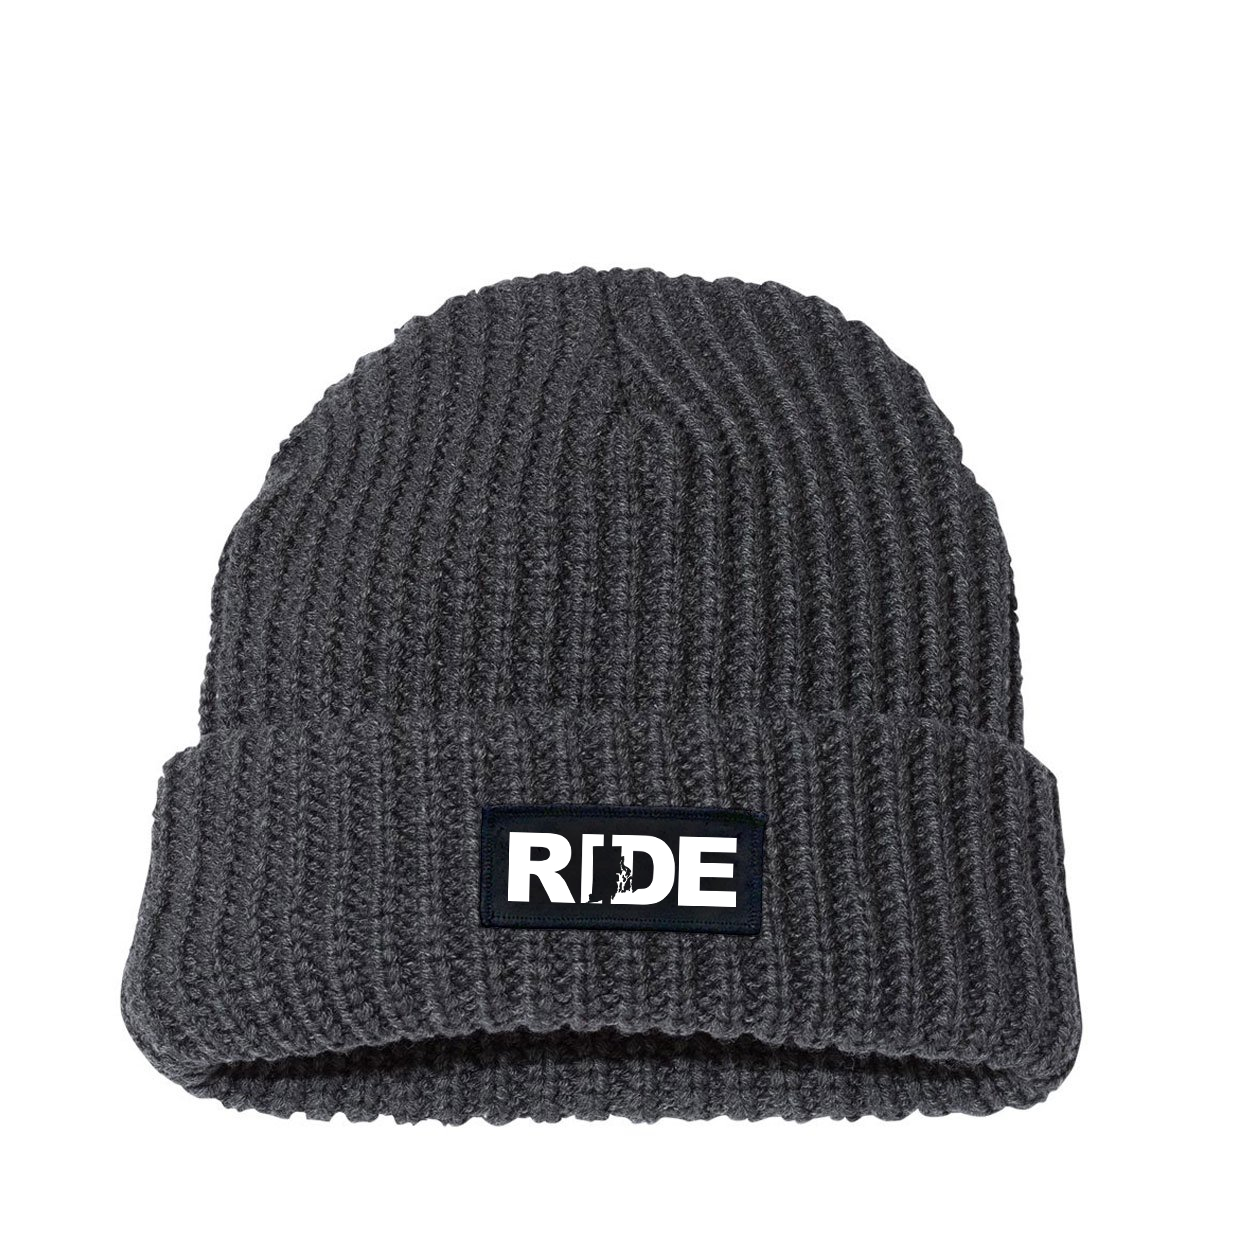 Ride Rhode Island Night Out Woven Patch Roll Up Jumbo Chunky Knit Beanie Charcoal (White Logo)